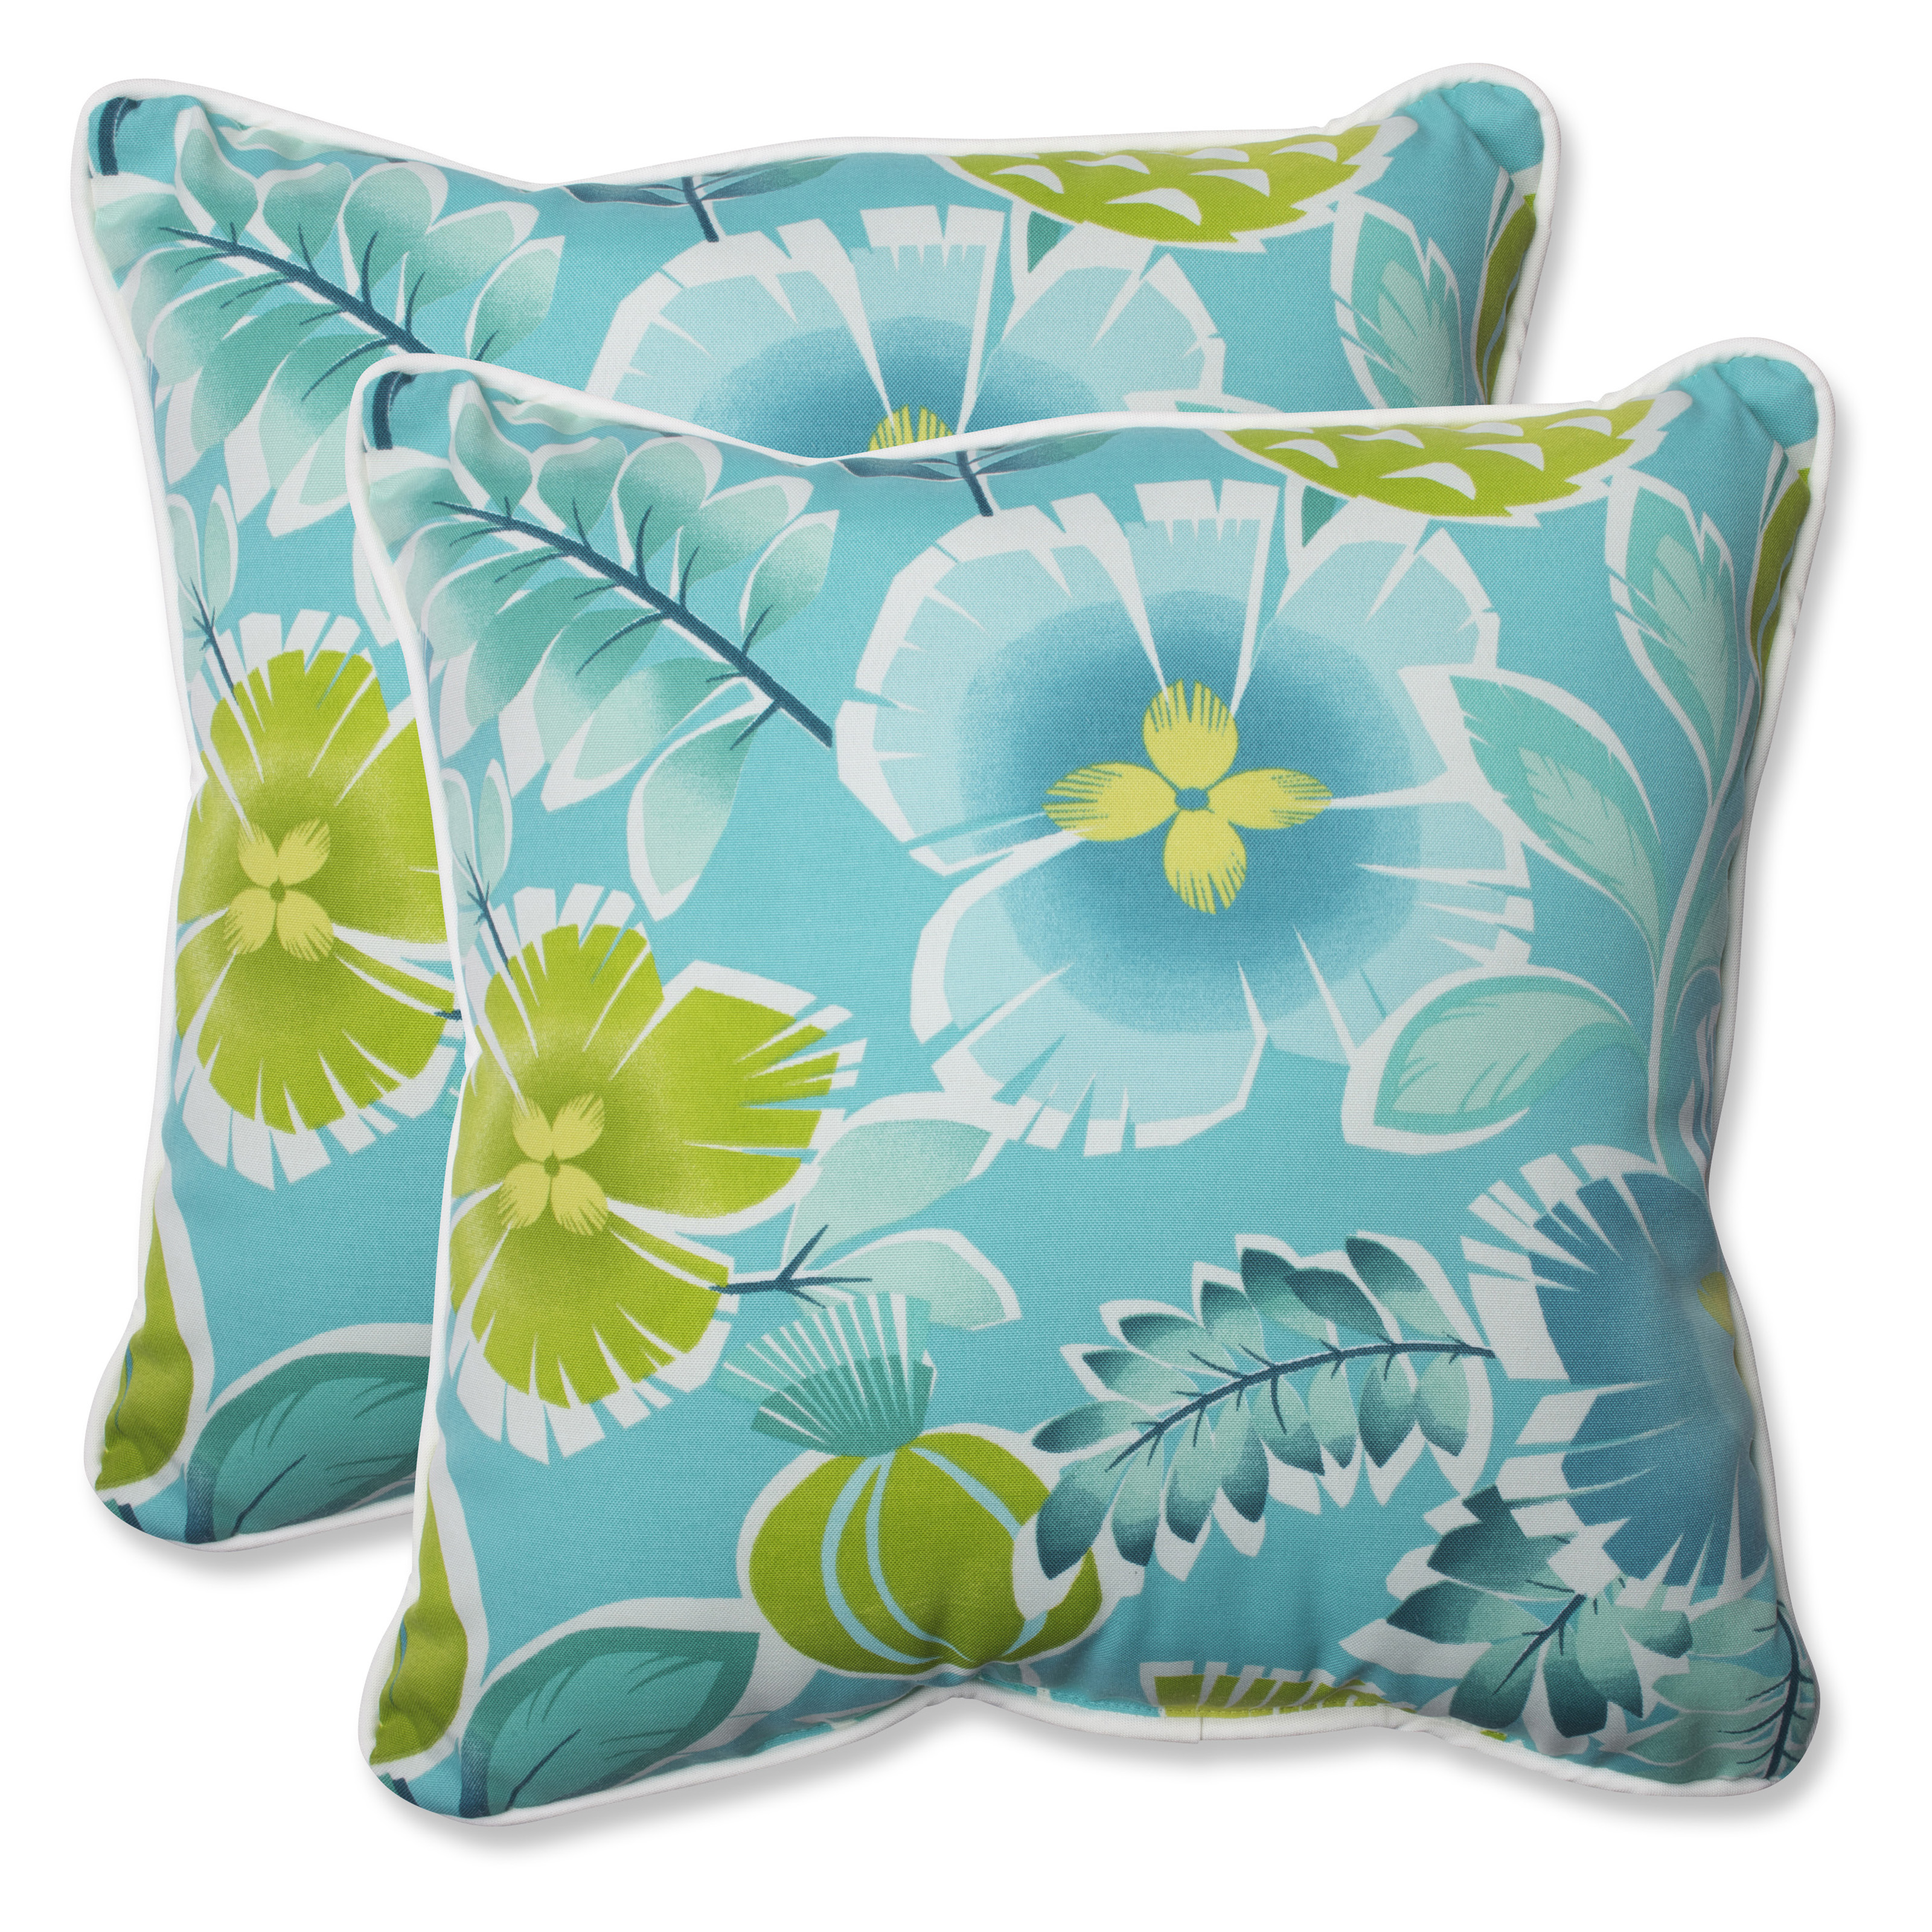 Turquoise Decorative Pillow Set : Pillow Perfect Calypso Turquoise Square Outdoor Throw Pillow - Set of 2 - Outdoor Pillows at ...